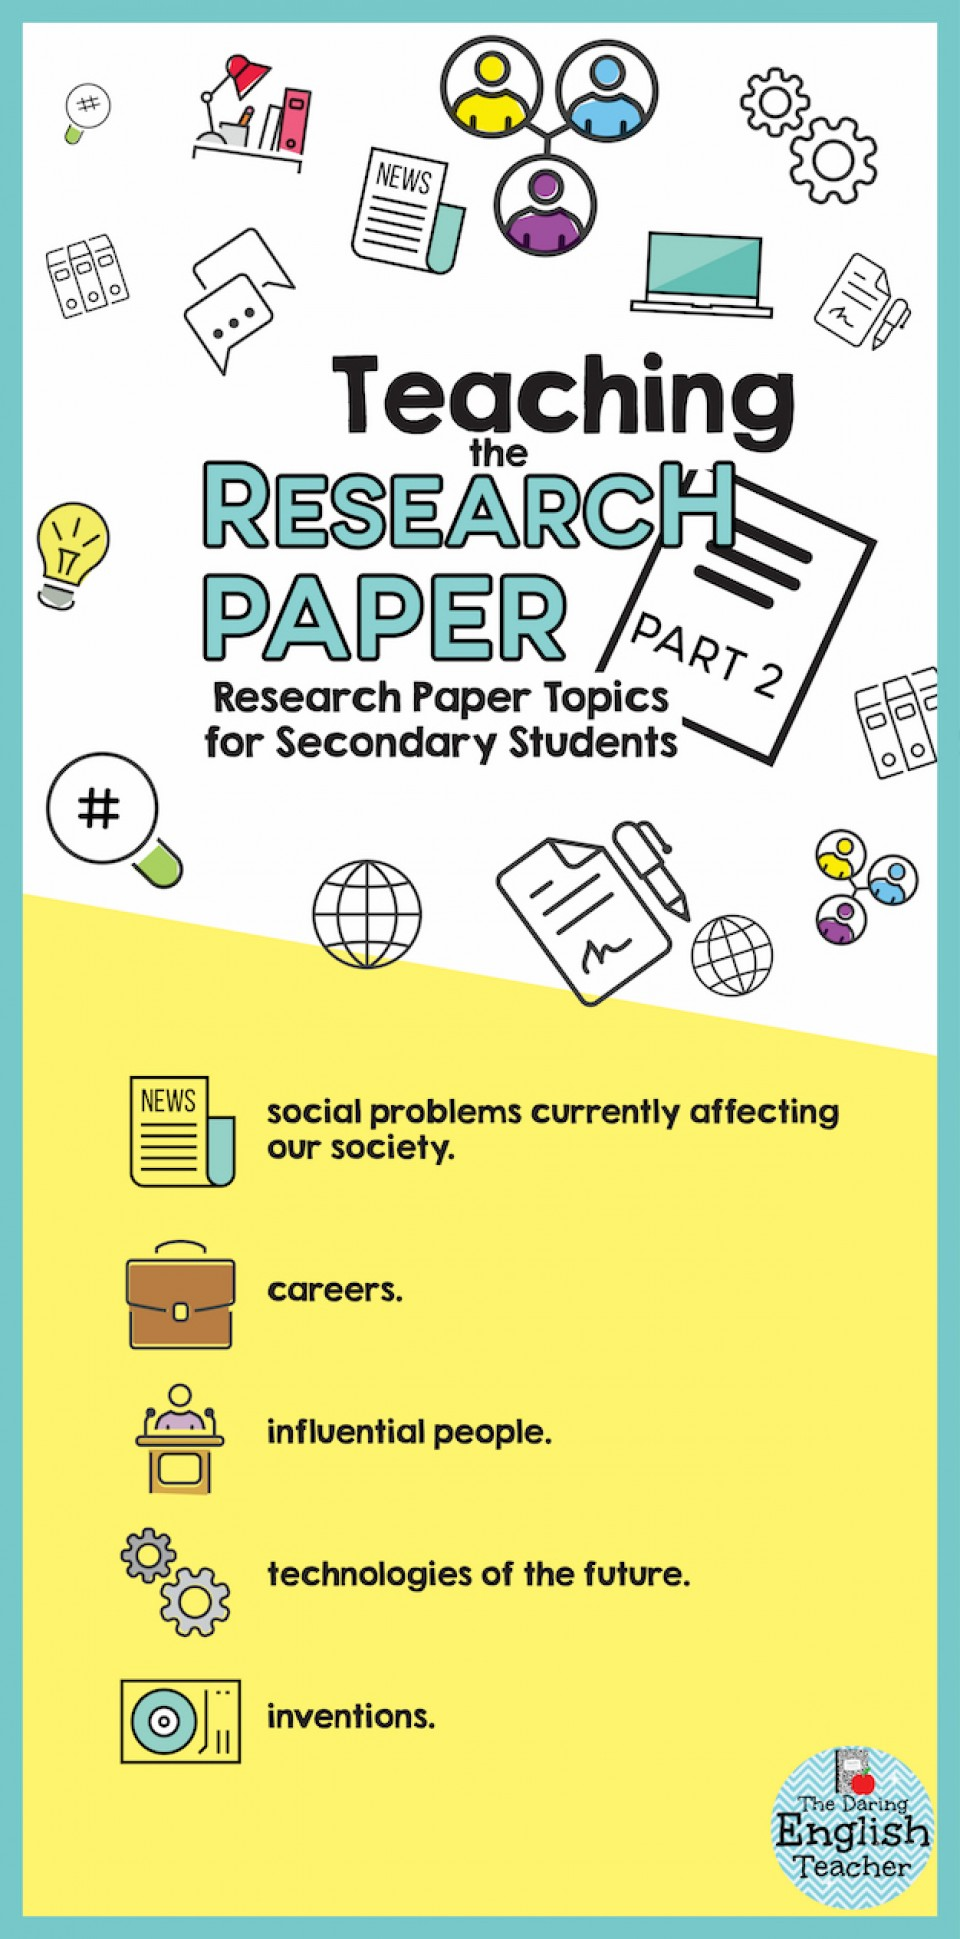 020 Infographic2bp22b2 Research Paper Topic For Unusual A About Business Topics 2018 In Psychology 960